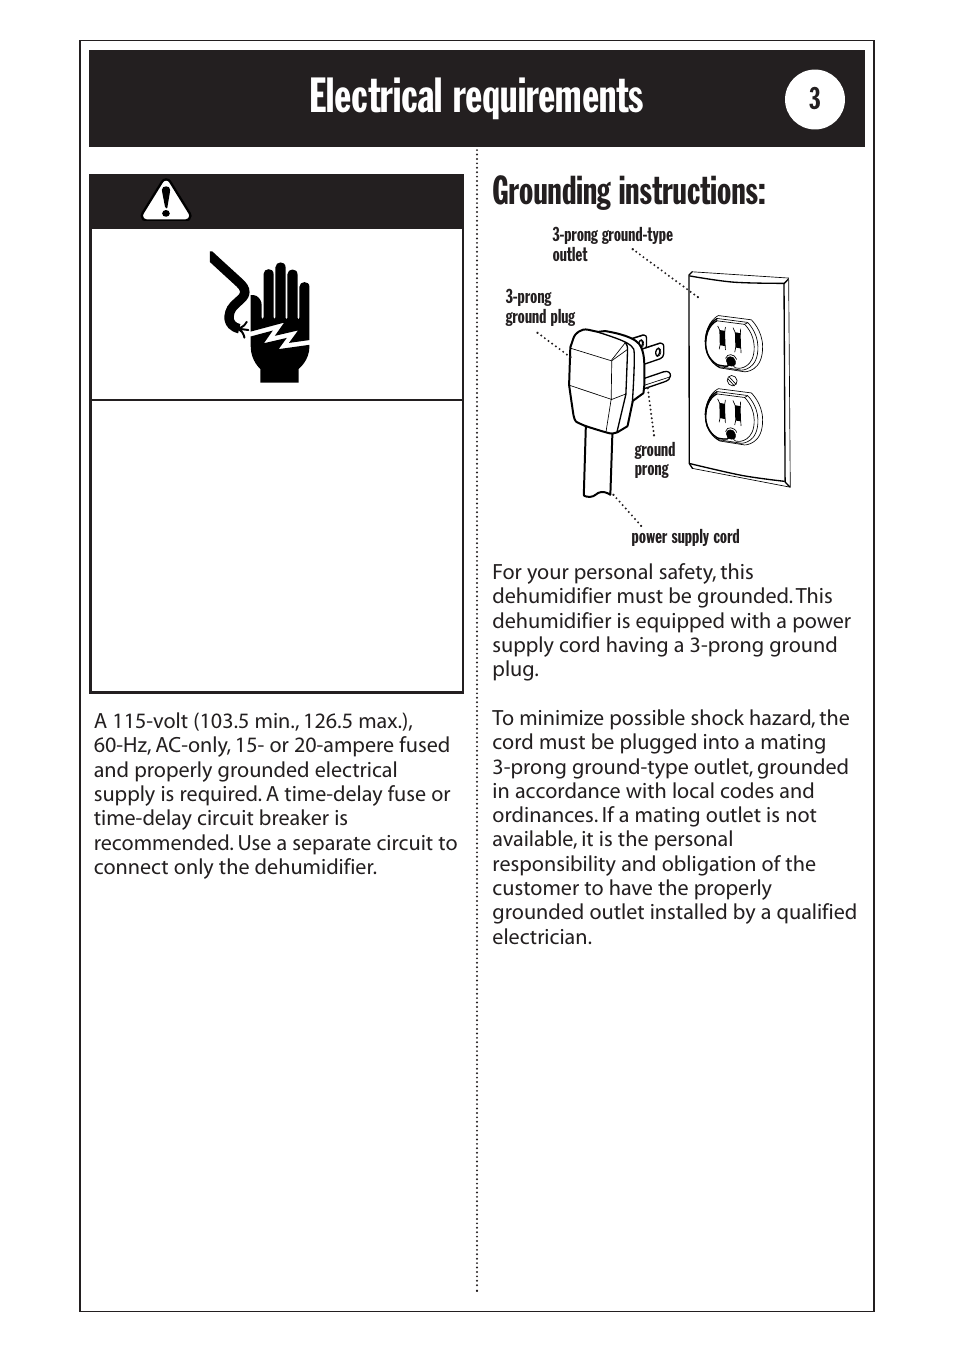 Electrical Requirements Warning Grounding Instructions Whirlpool Timedelaycircuit 1185020 User Manual Page 3 24